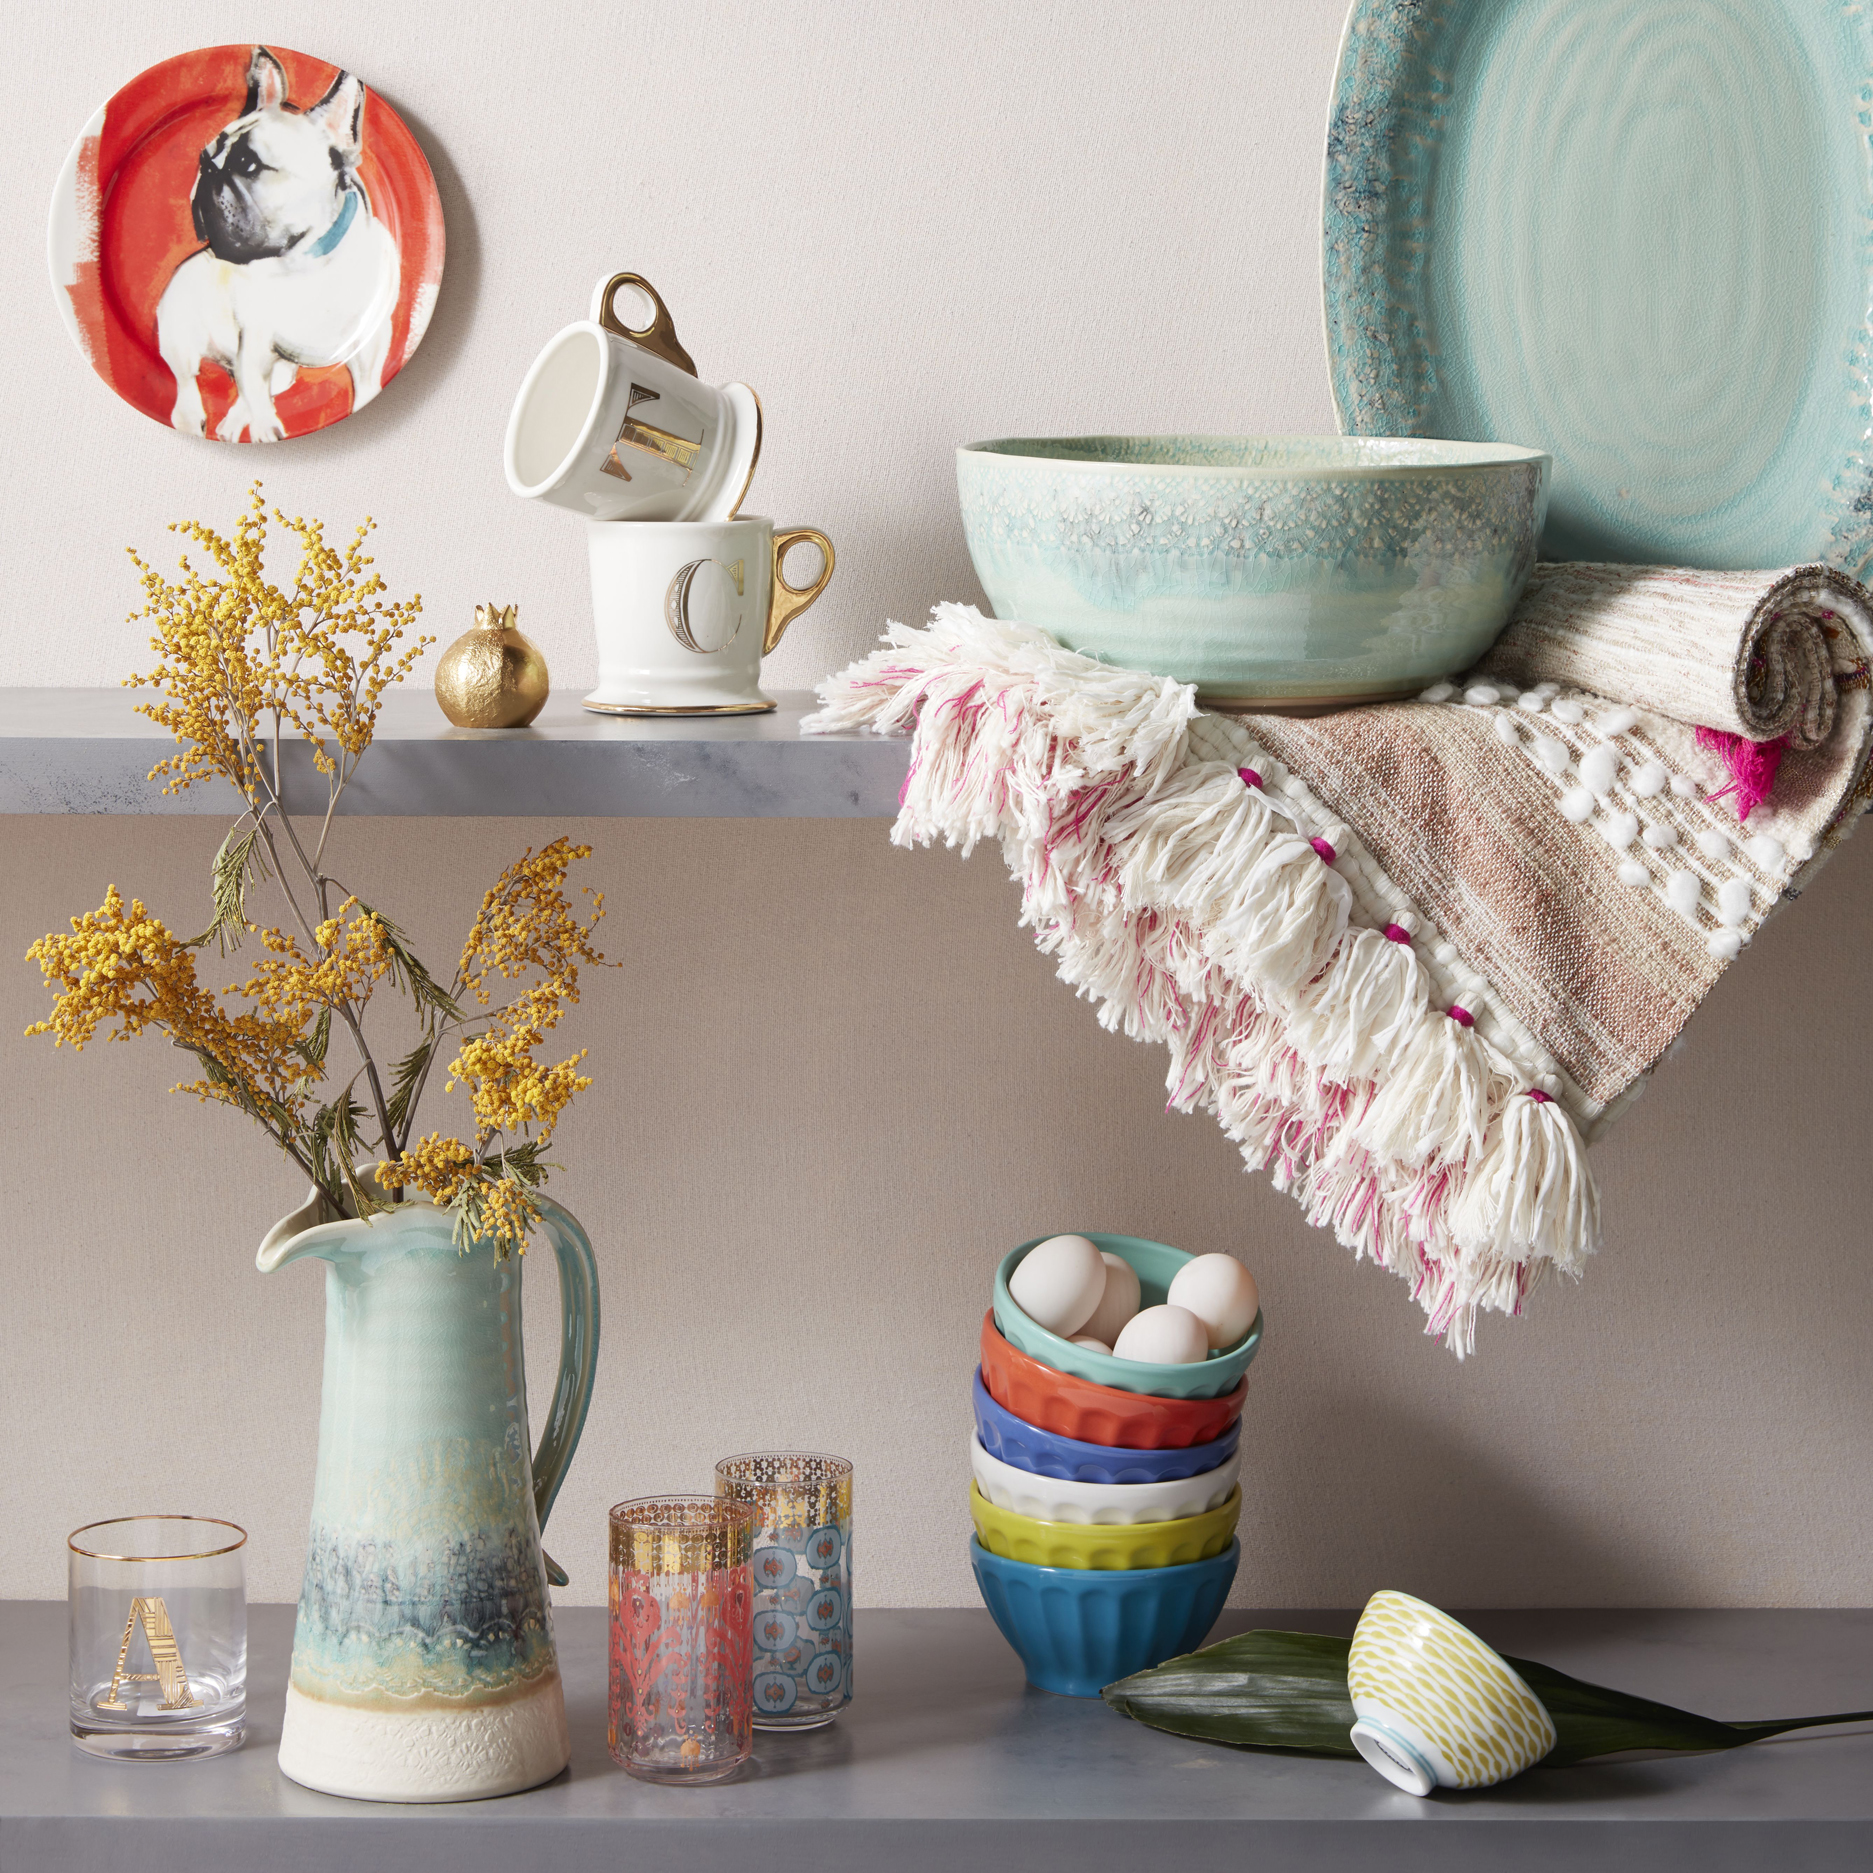 Anthropologie collection of tableware, John Lewis